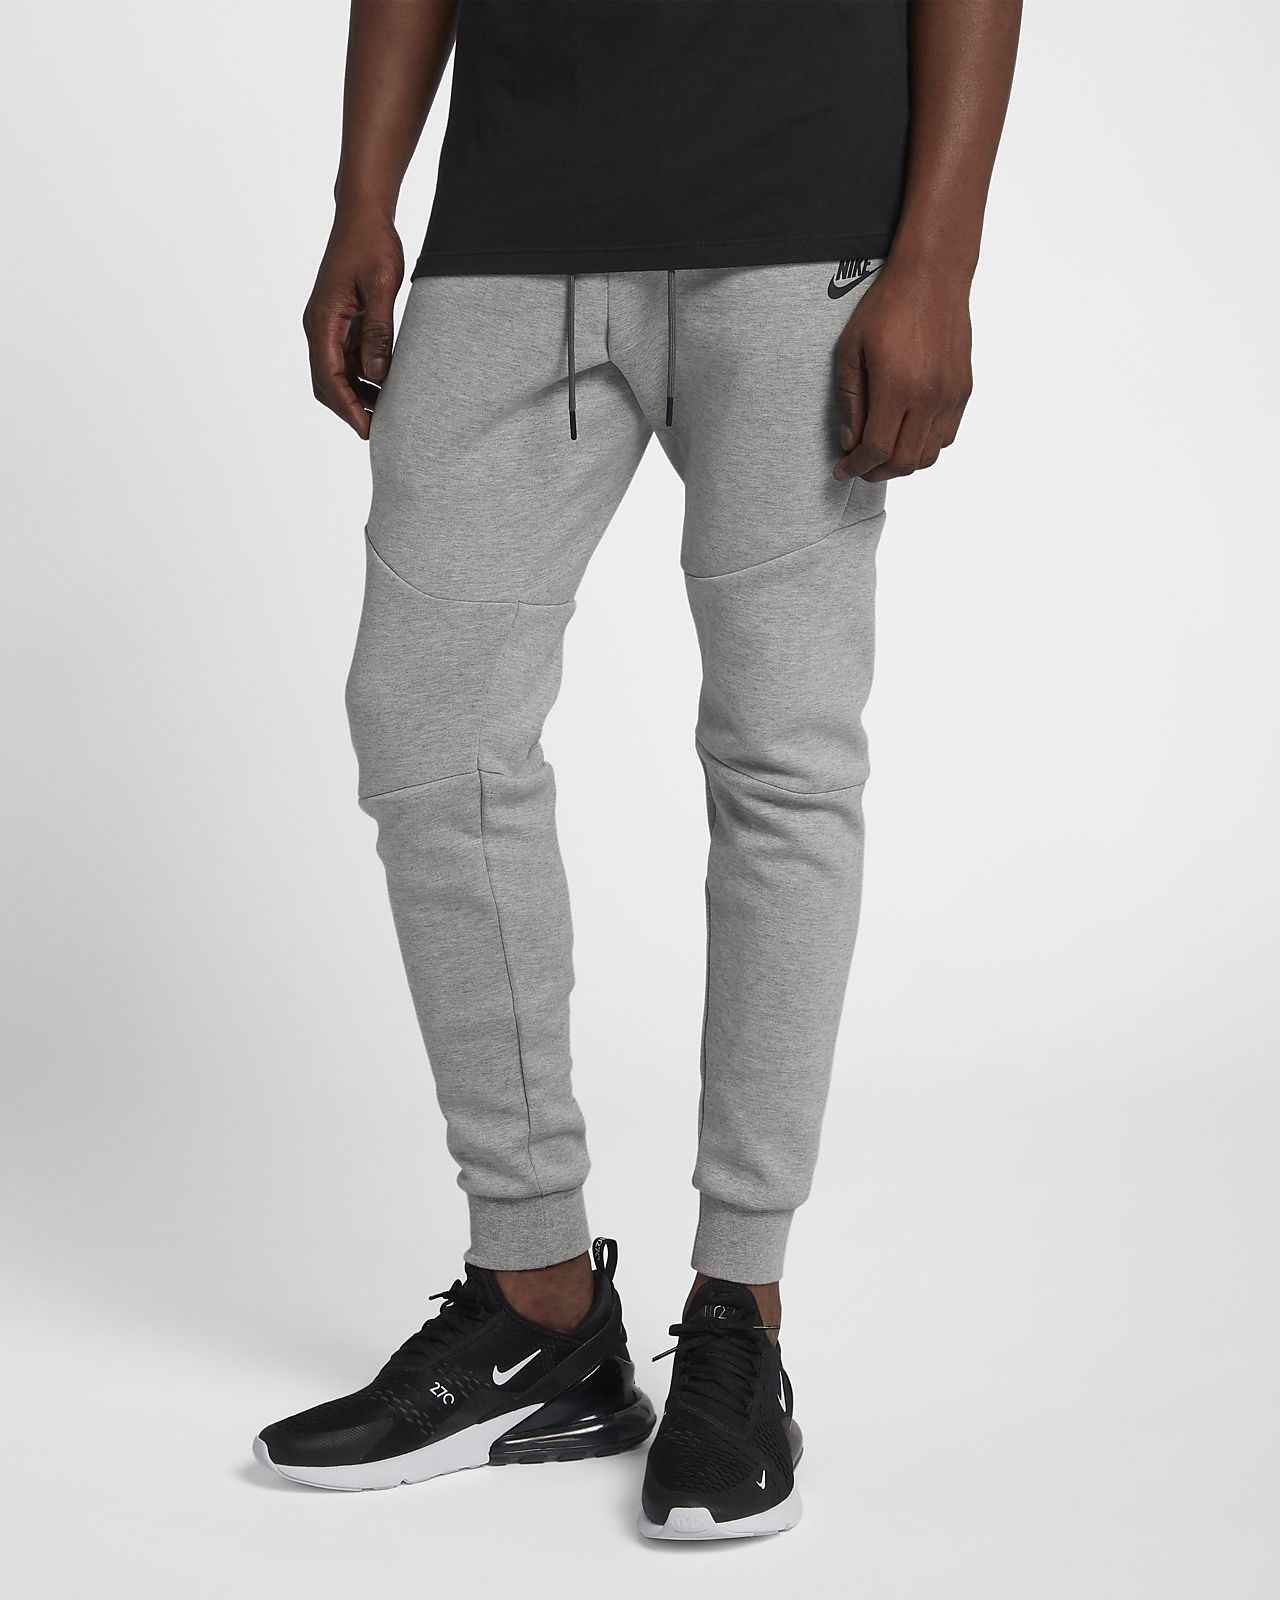 promo code 65435 67769 Men s Joggers. Nike Sportswear Tech Fleece